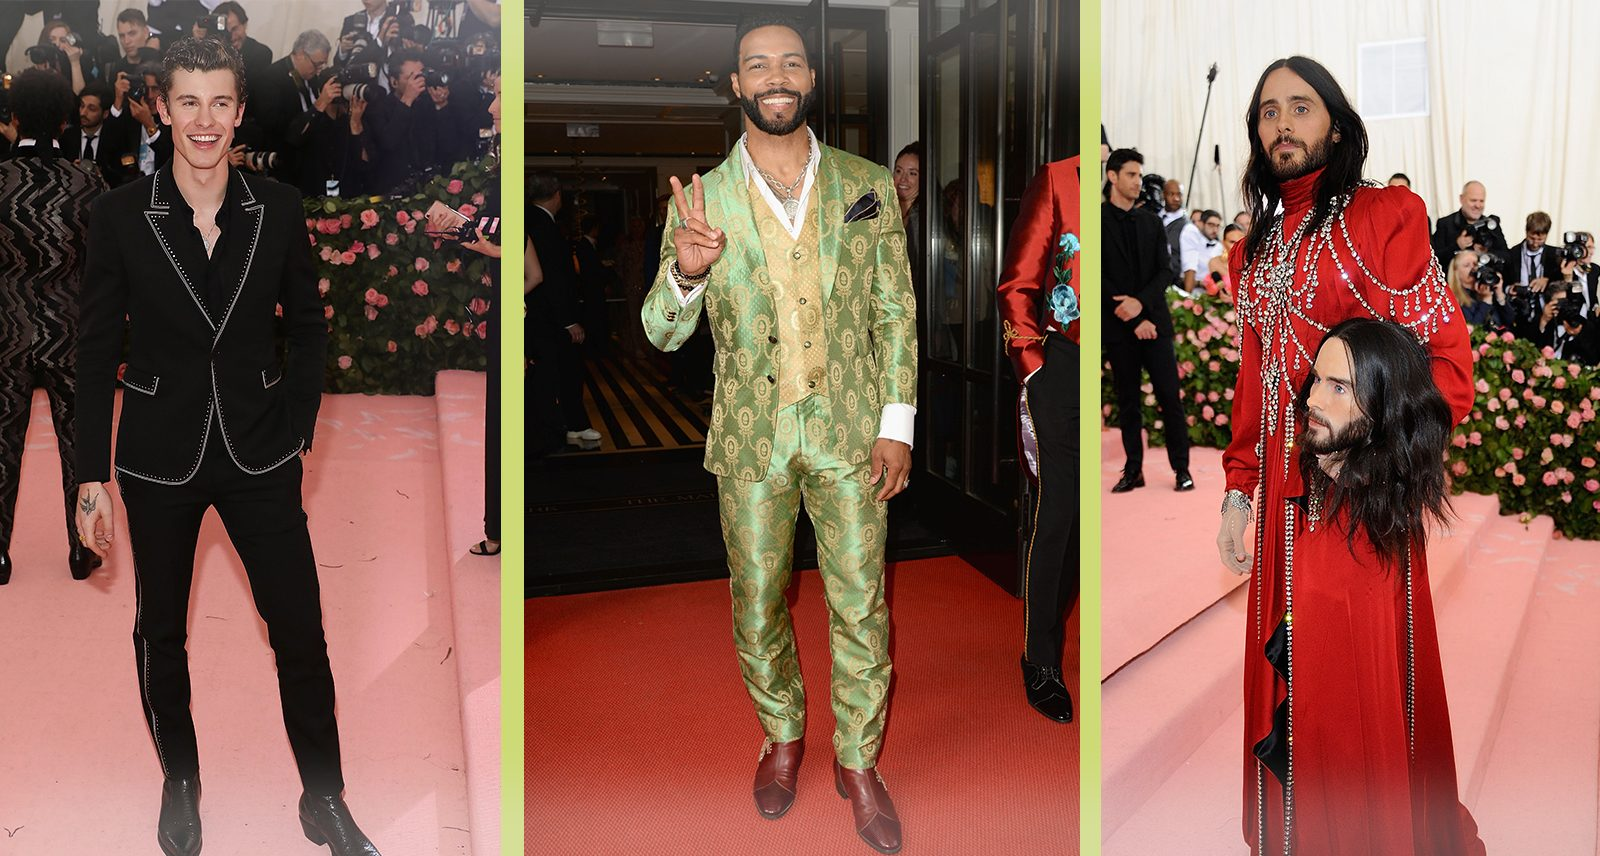 Met Gala 2019: The Coolest, Campiest, and Most Preposterous Looks of the Night